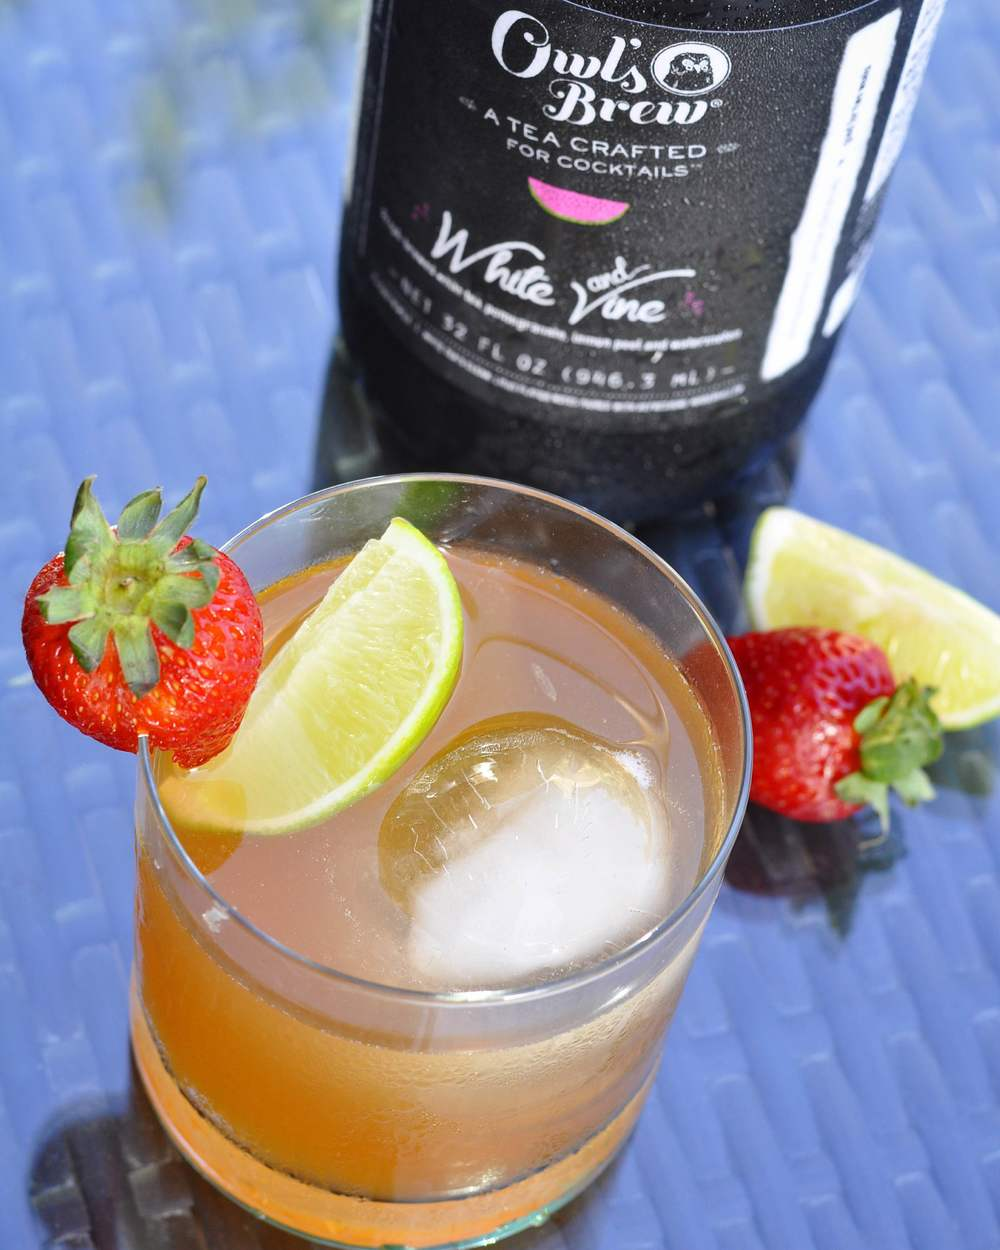 Mai Tai Recipe using Owl's Brew Mixer